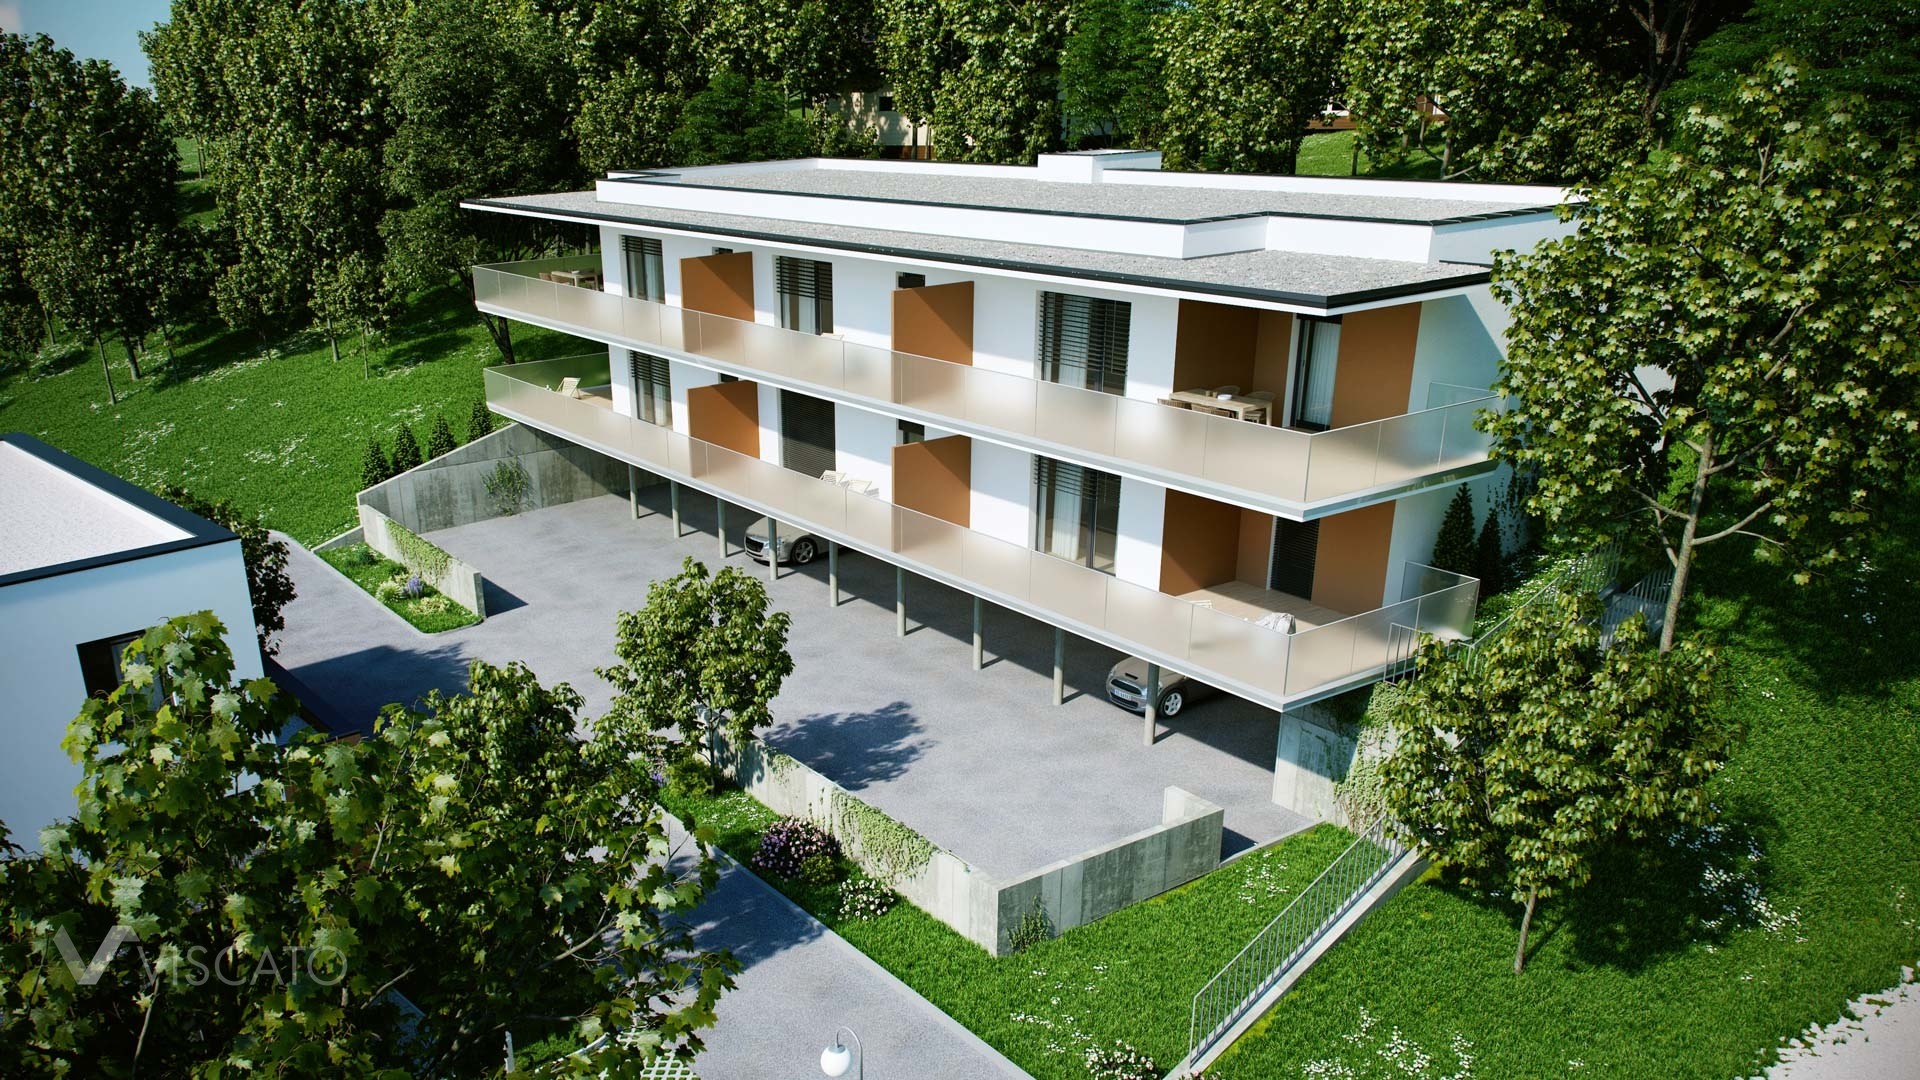 Lifelike visualization of a multi-family house with a parking space Viscato